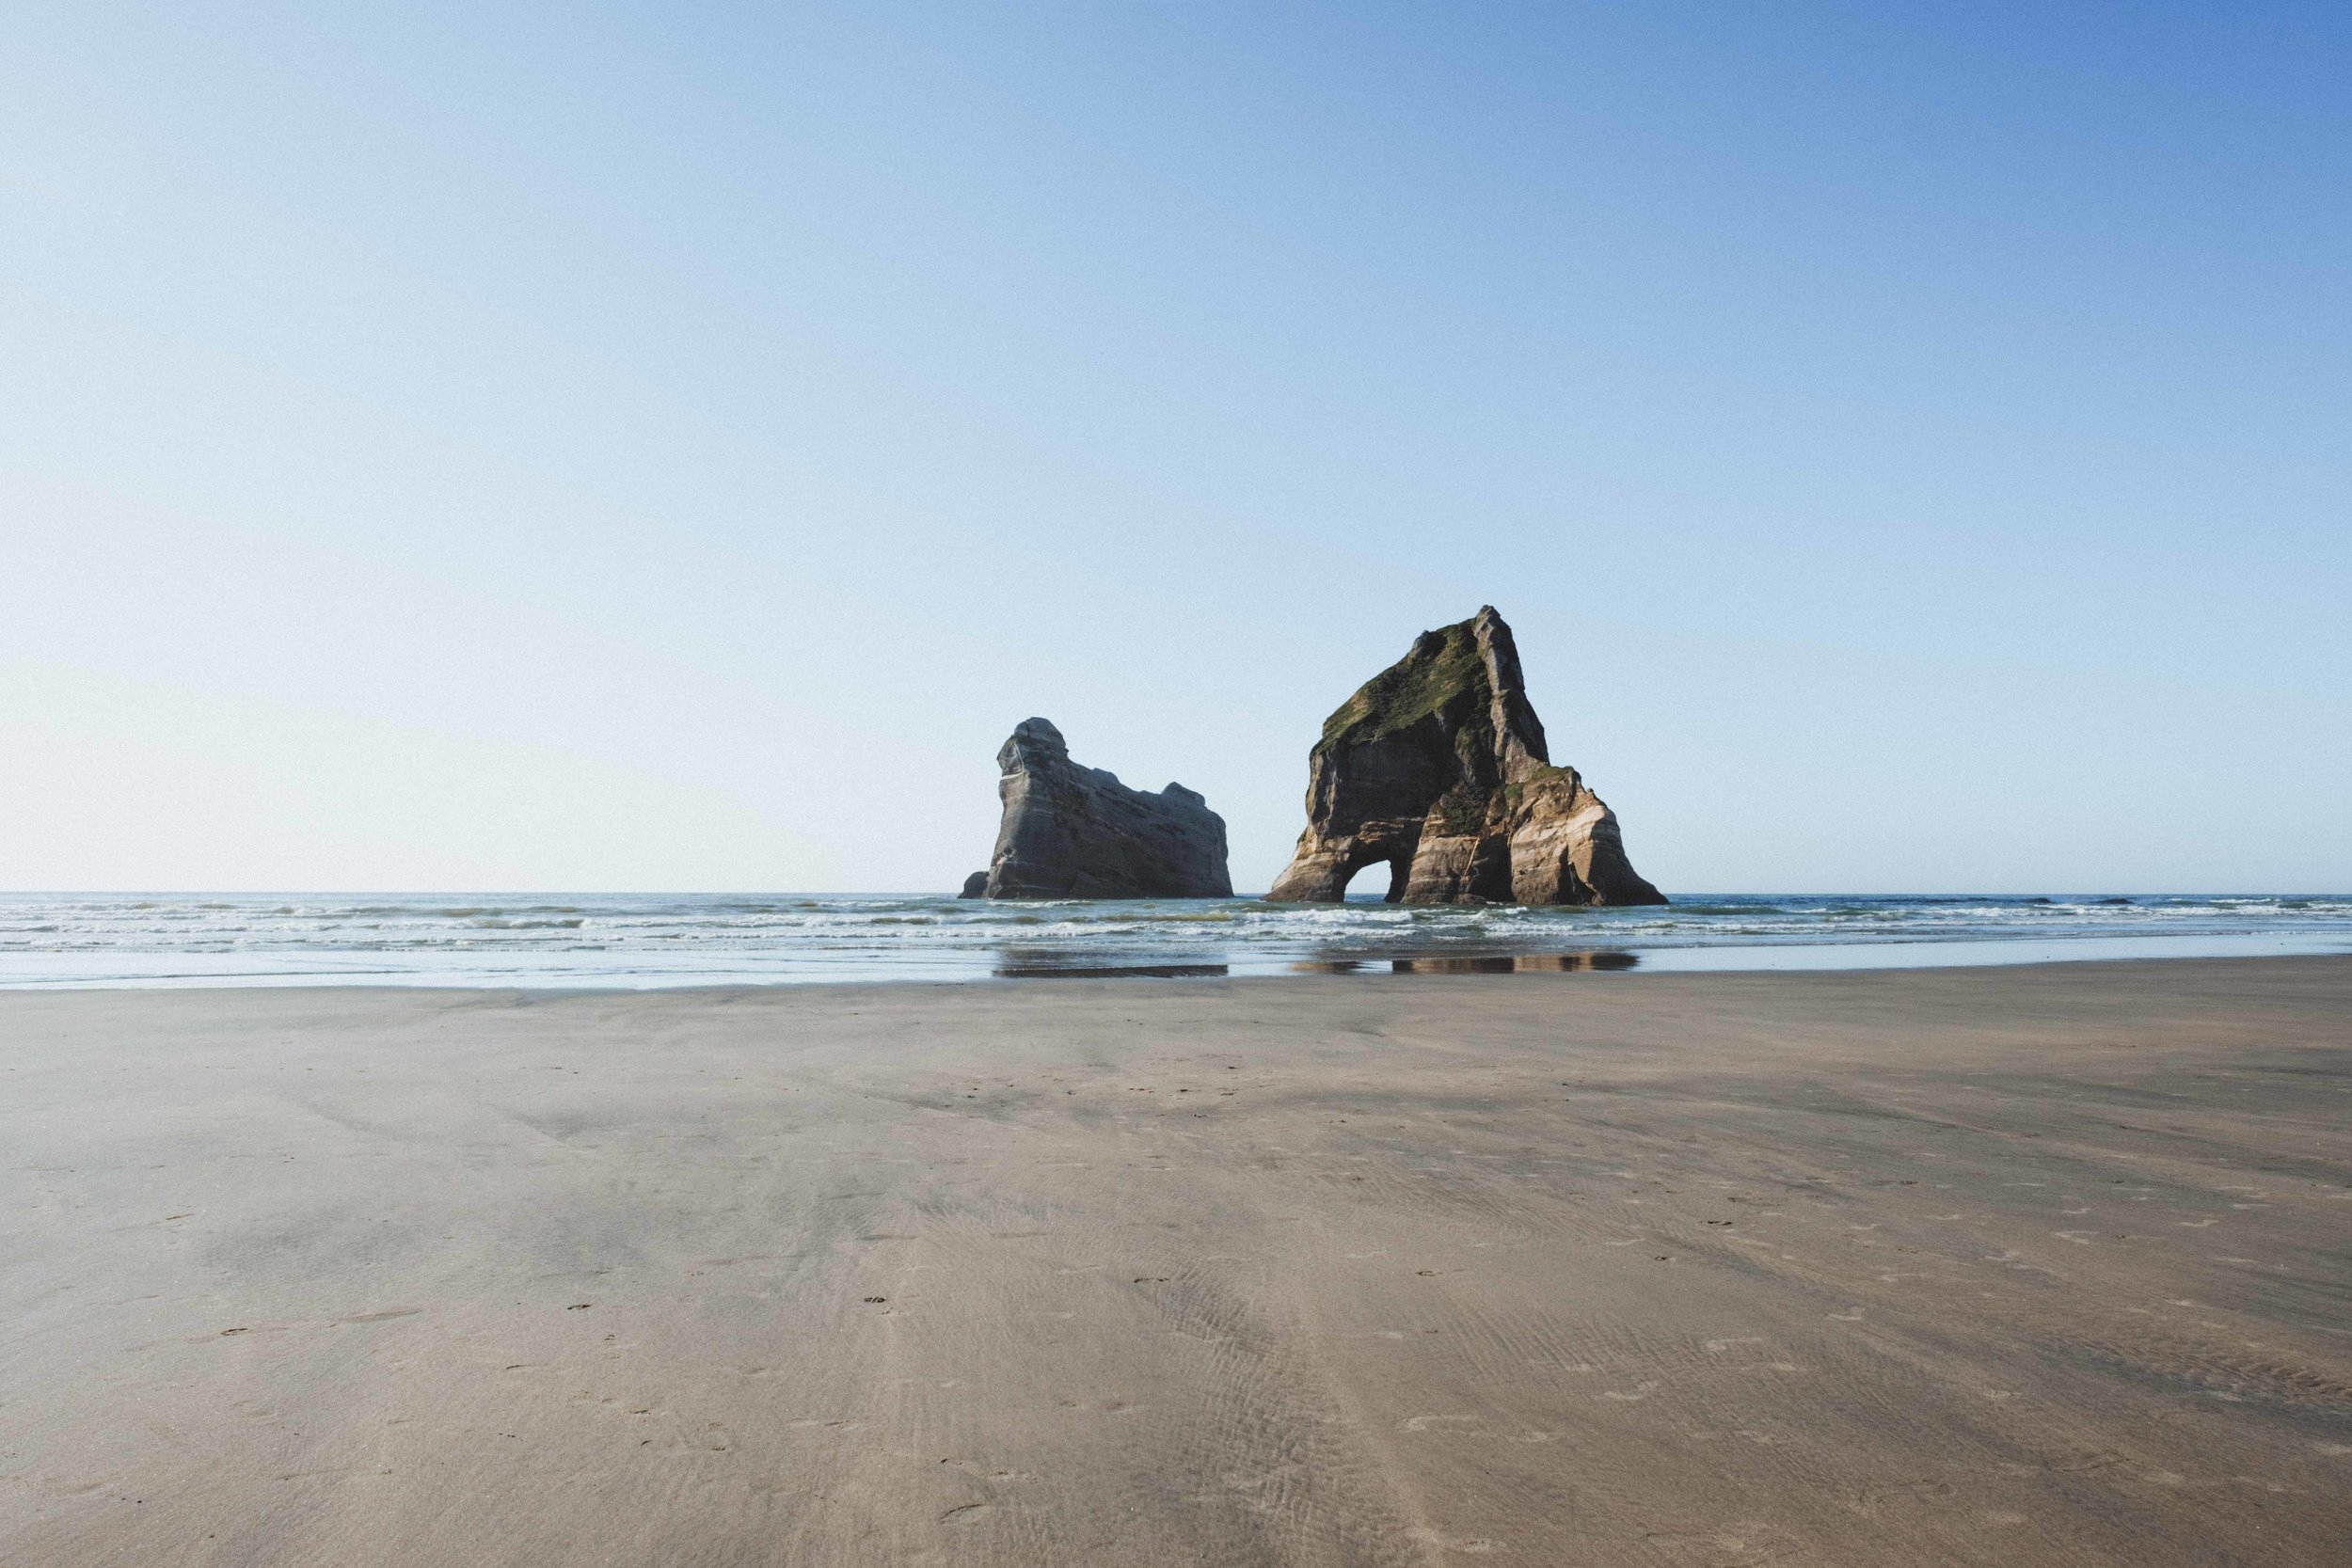 Archway Islands, symbole le plus connus de Wharariki Beach, que l'on retrouve sur les cartes postales ;)